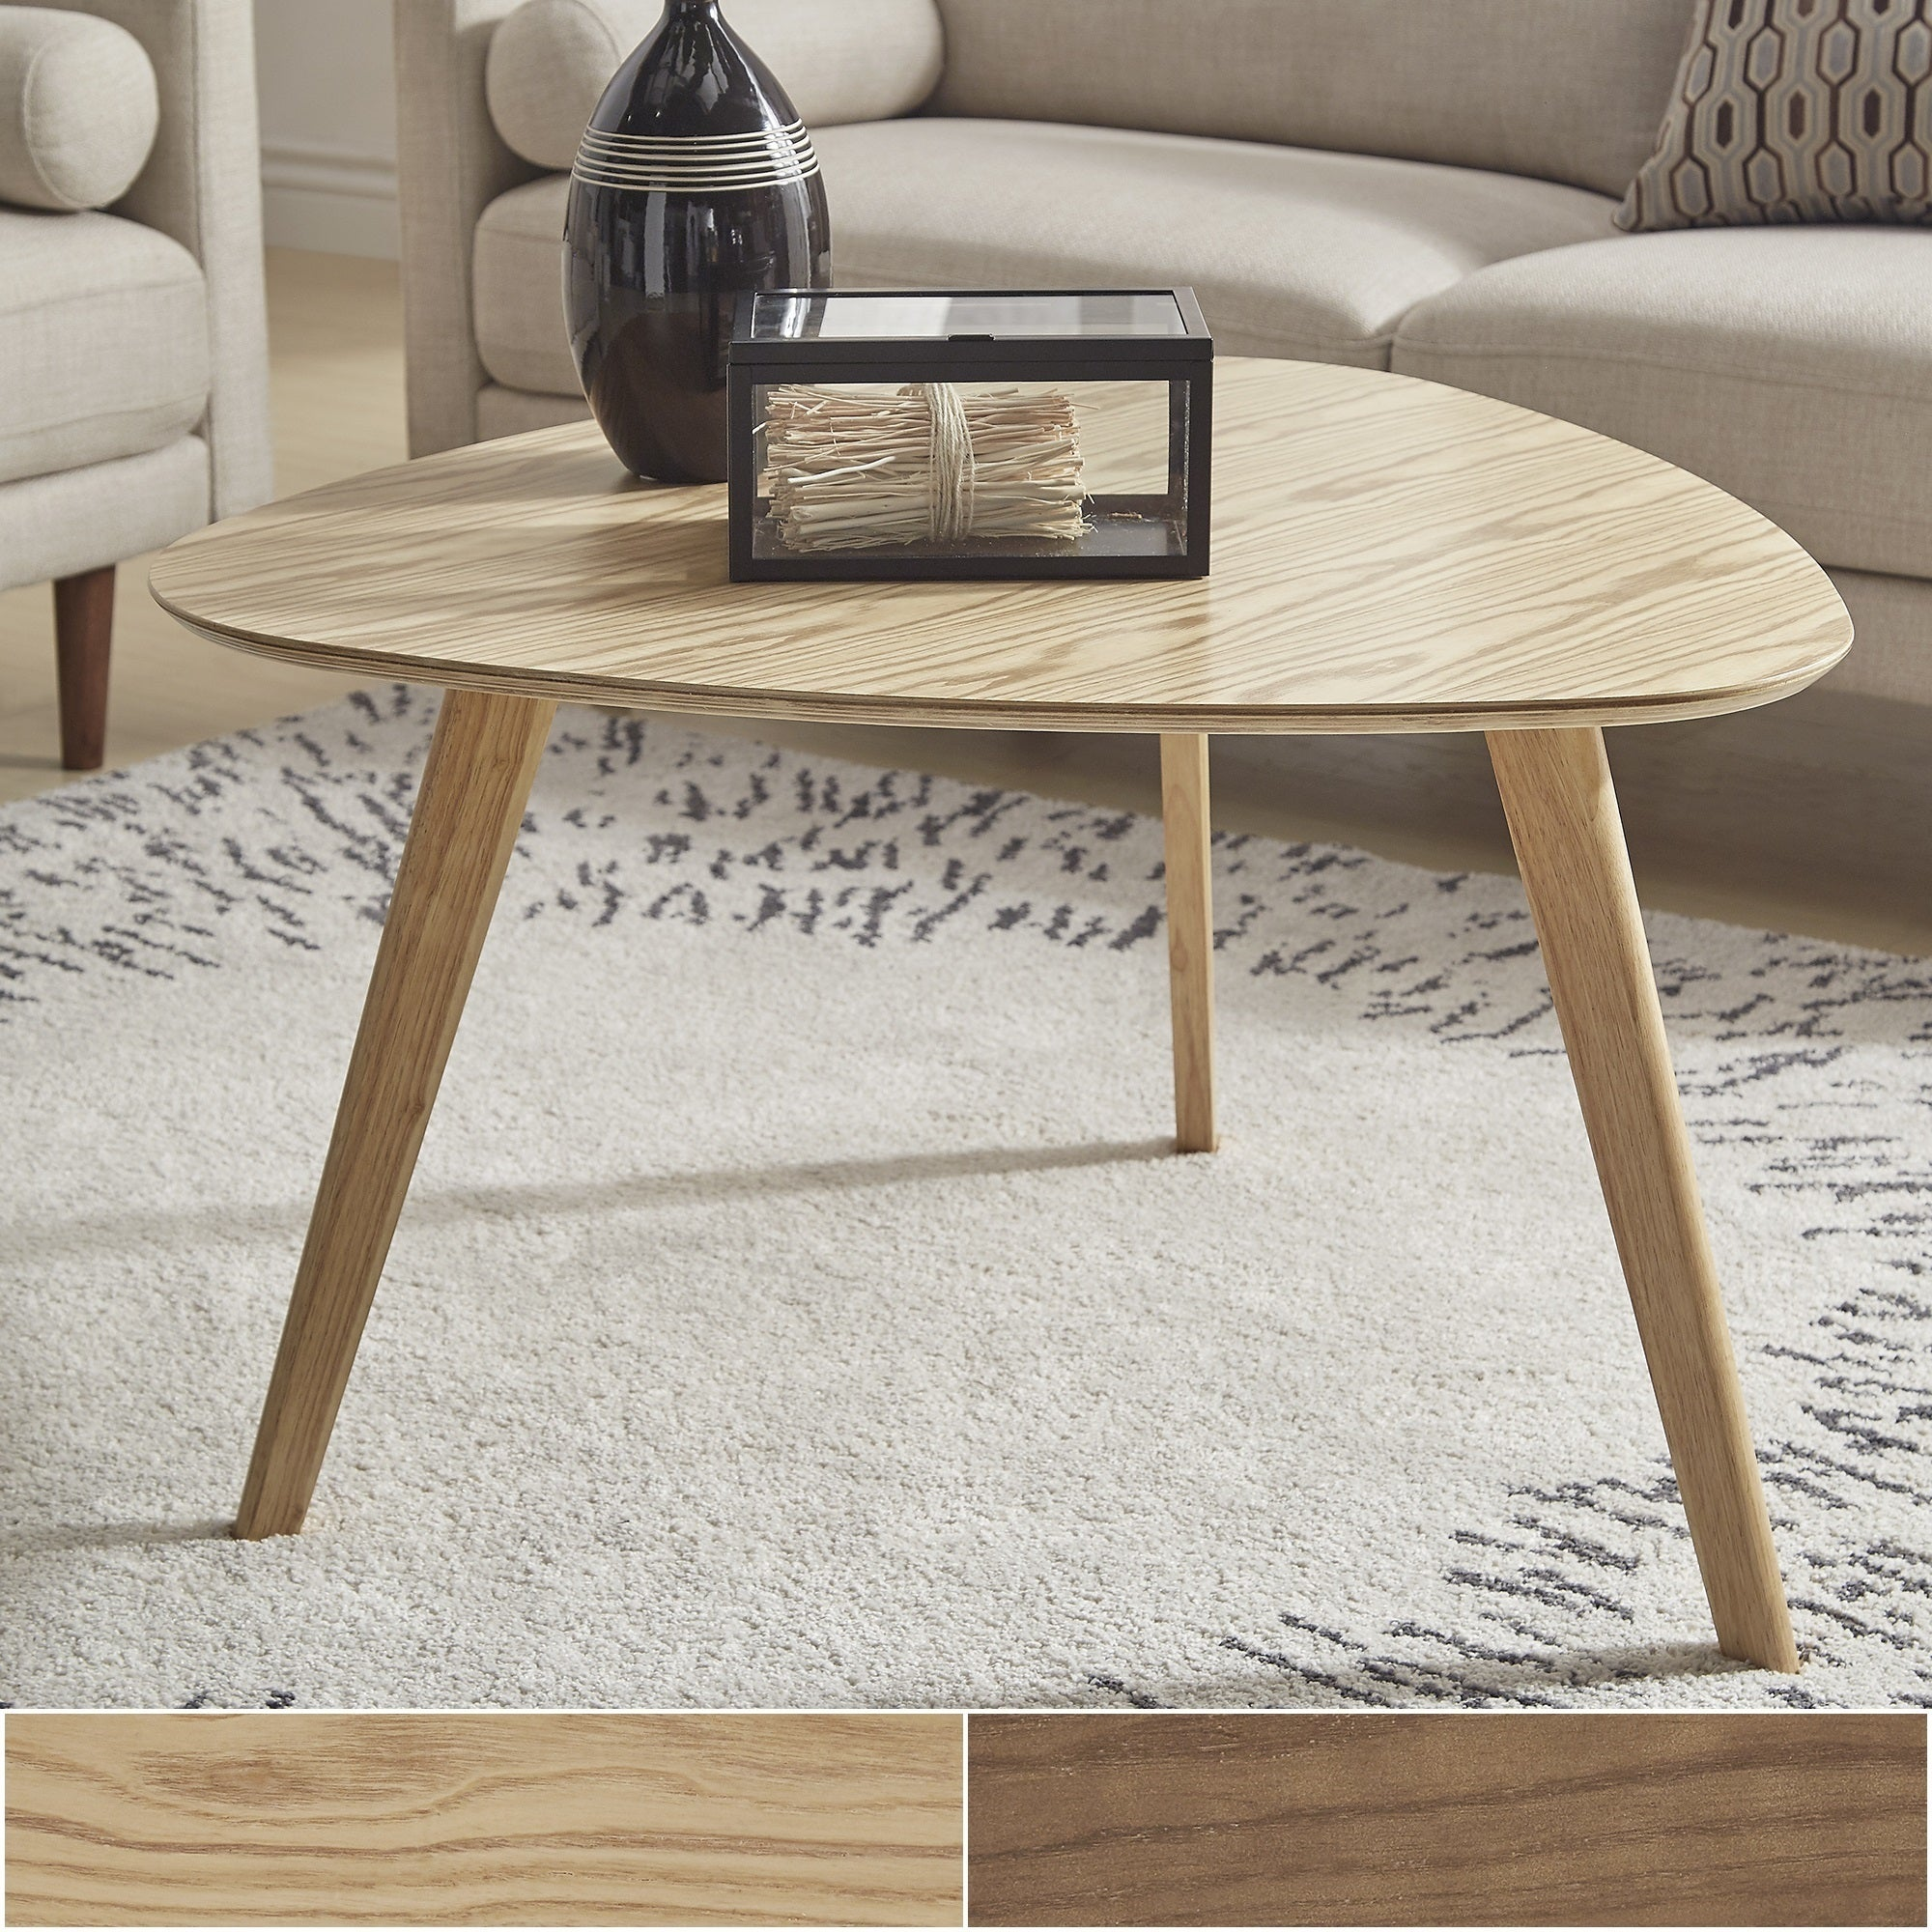 Shop Adler Mid-Century Triangular Wood Coffee Table By